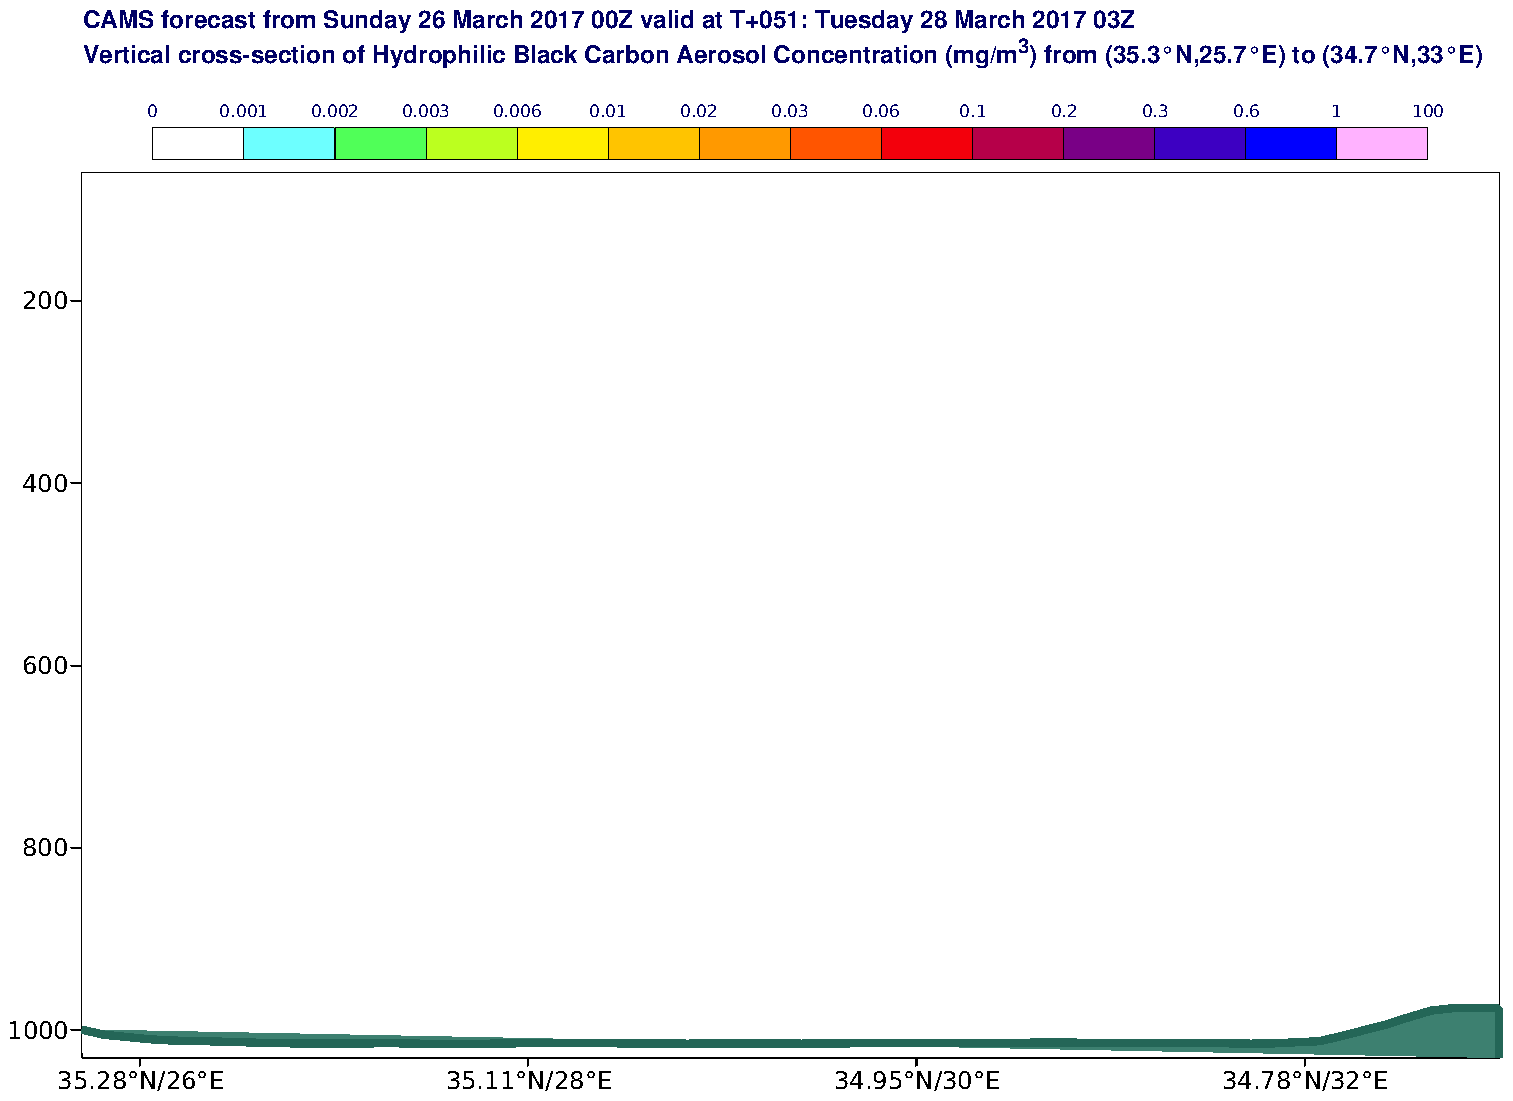 Vertical cross-section of Hydrophilic Black Carbon Aerosol Concentration (mg/m3) valid at T51 - 2017-03-28 03:00